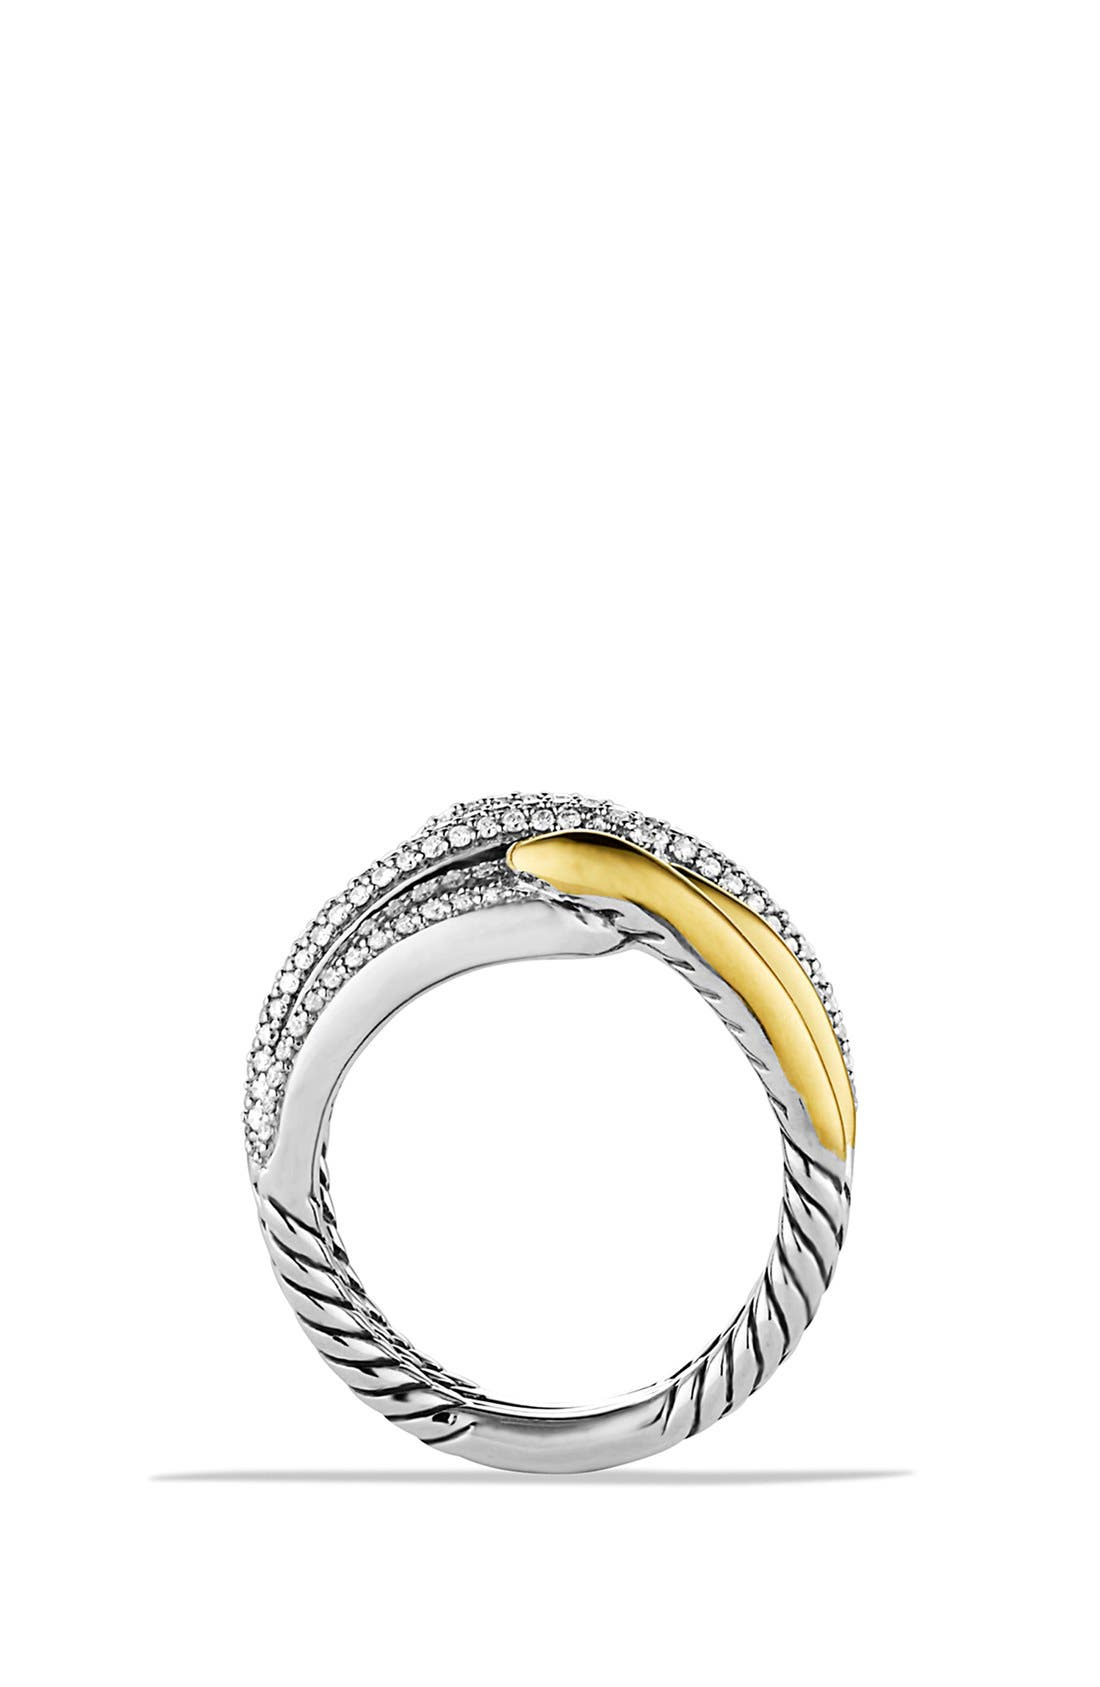 Alternate Image 4  - David Yurman 'Labyrinth' Double Loop Ring with Diamonds and Gold